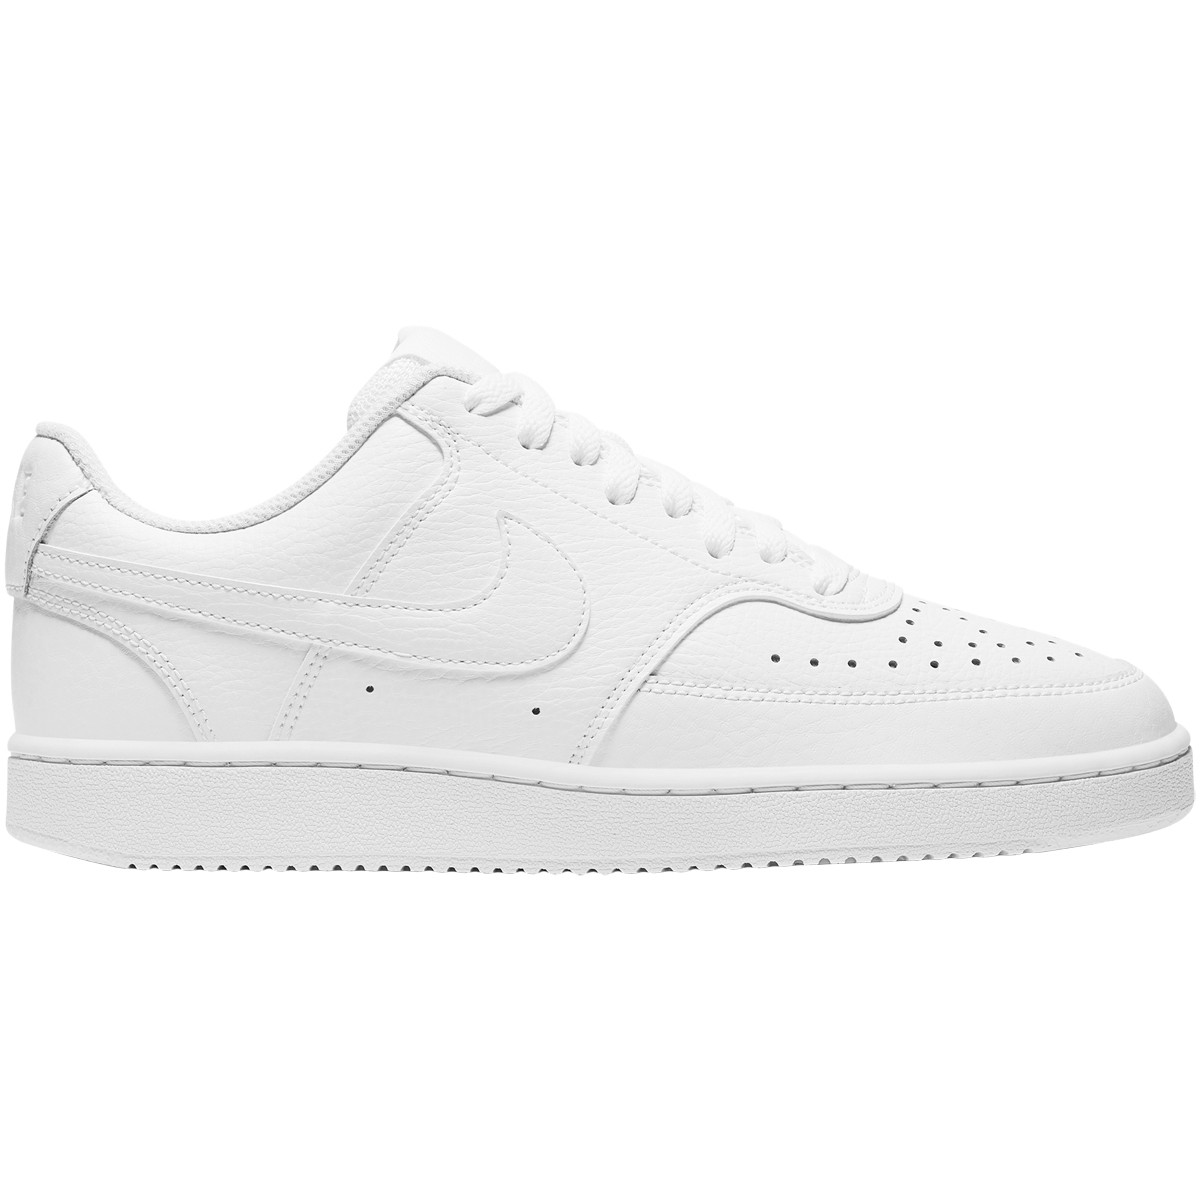 CHAUSSURES NIKE COURT VISION LOW